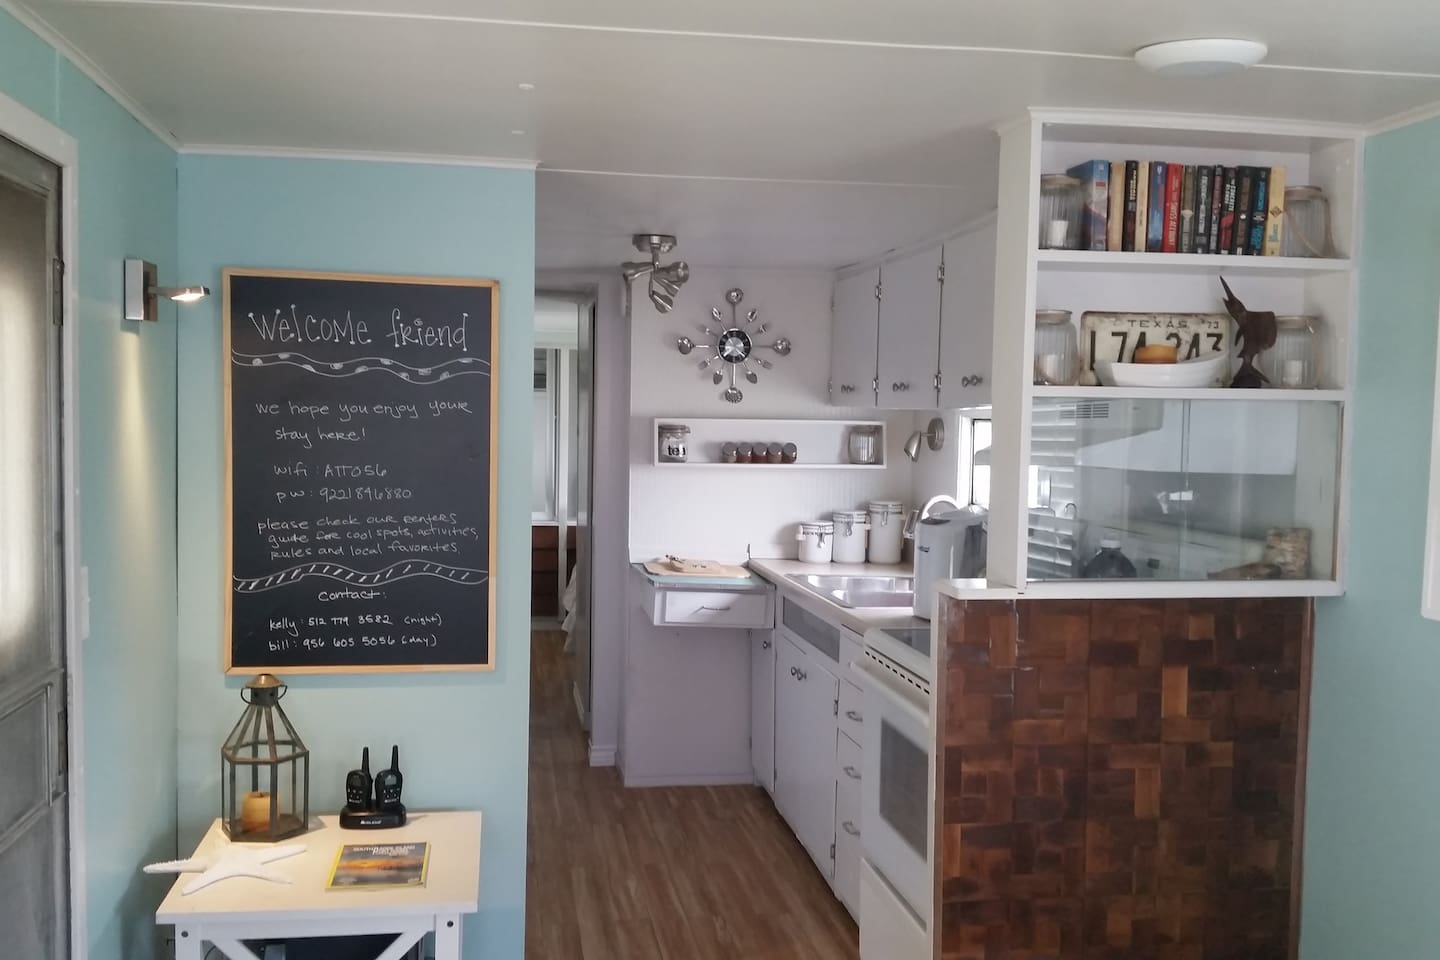 View into the kitchen. Glass top oven, refrigerator, microwave.